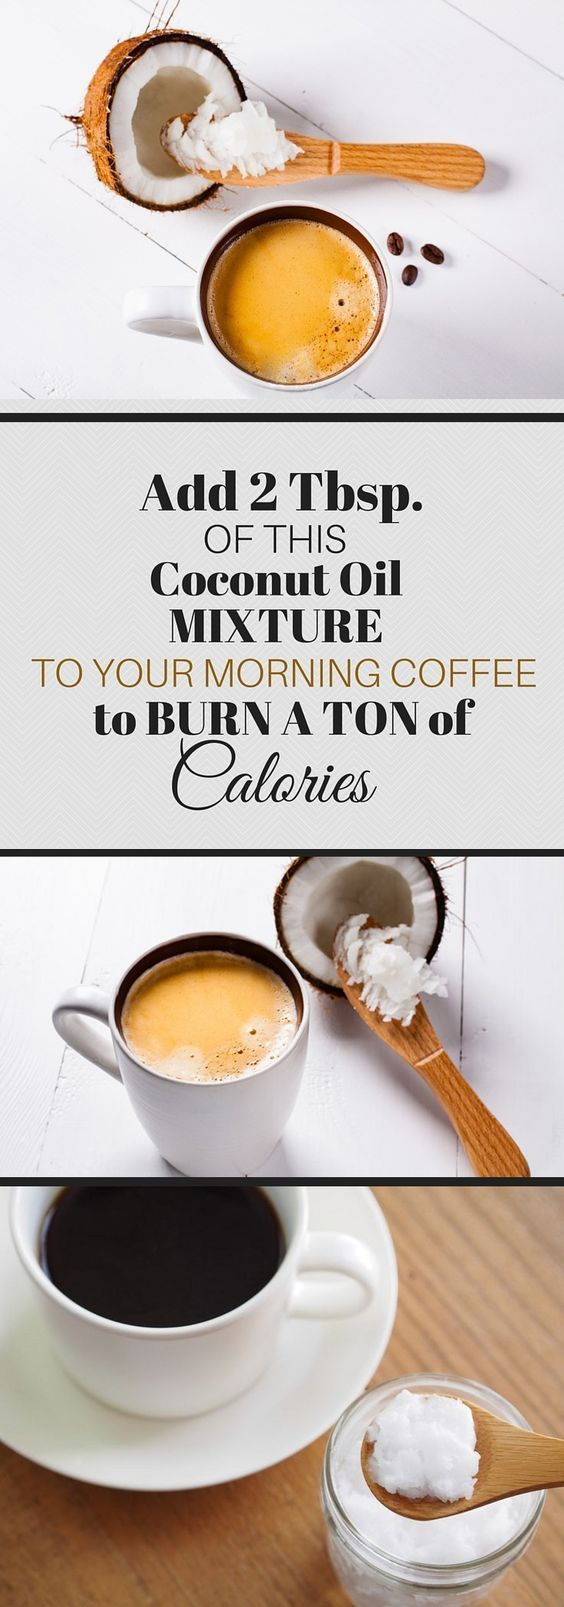 COCONUT OIL MIXTURE IN YOUR MORNING COFFEE BURNS A TON OF CALORIES – Healthy Society. #coconut #coffee #coconutoil #calories